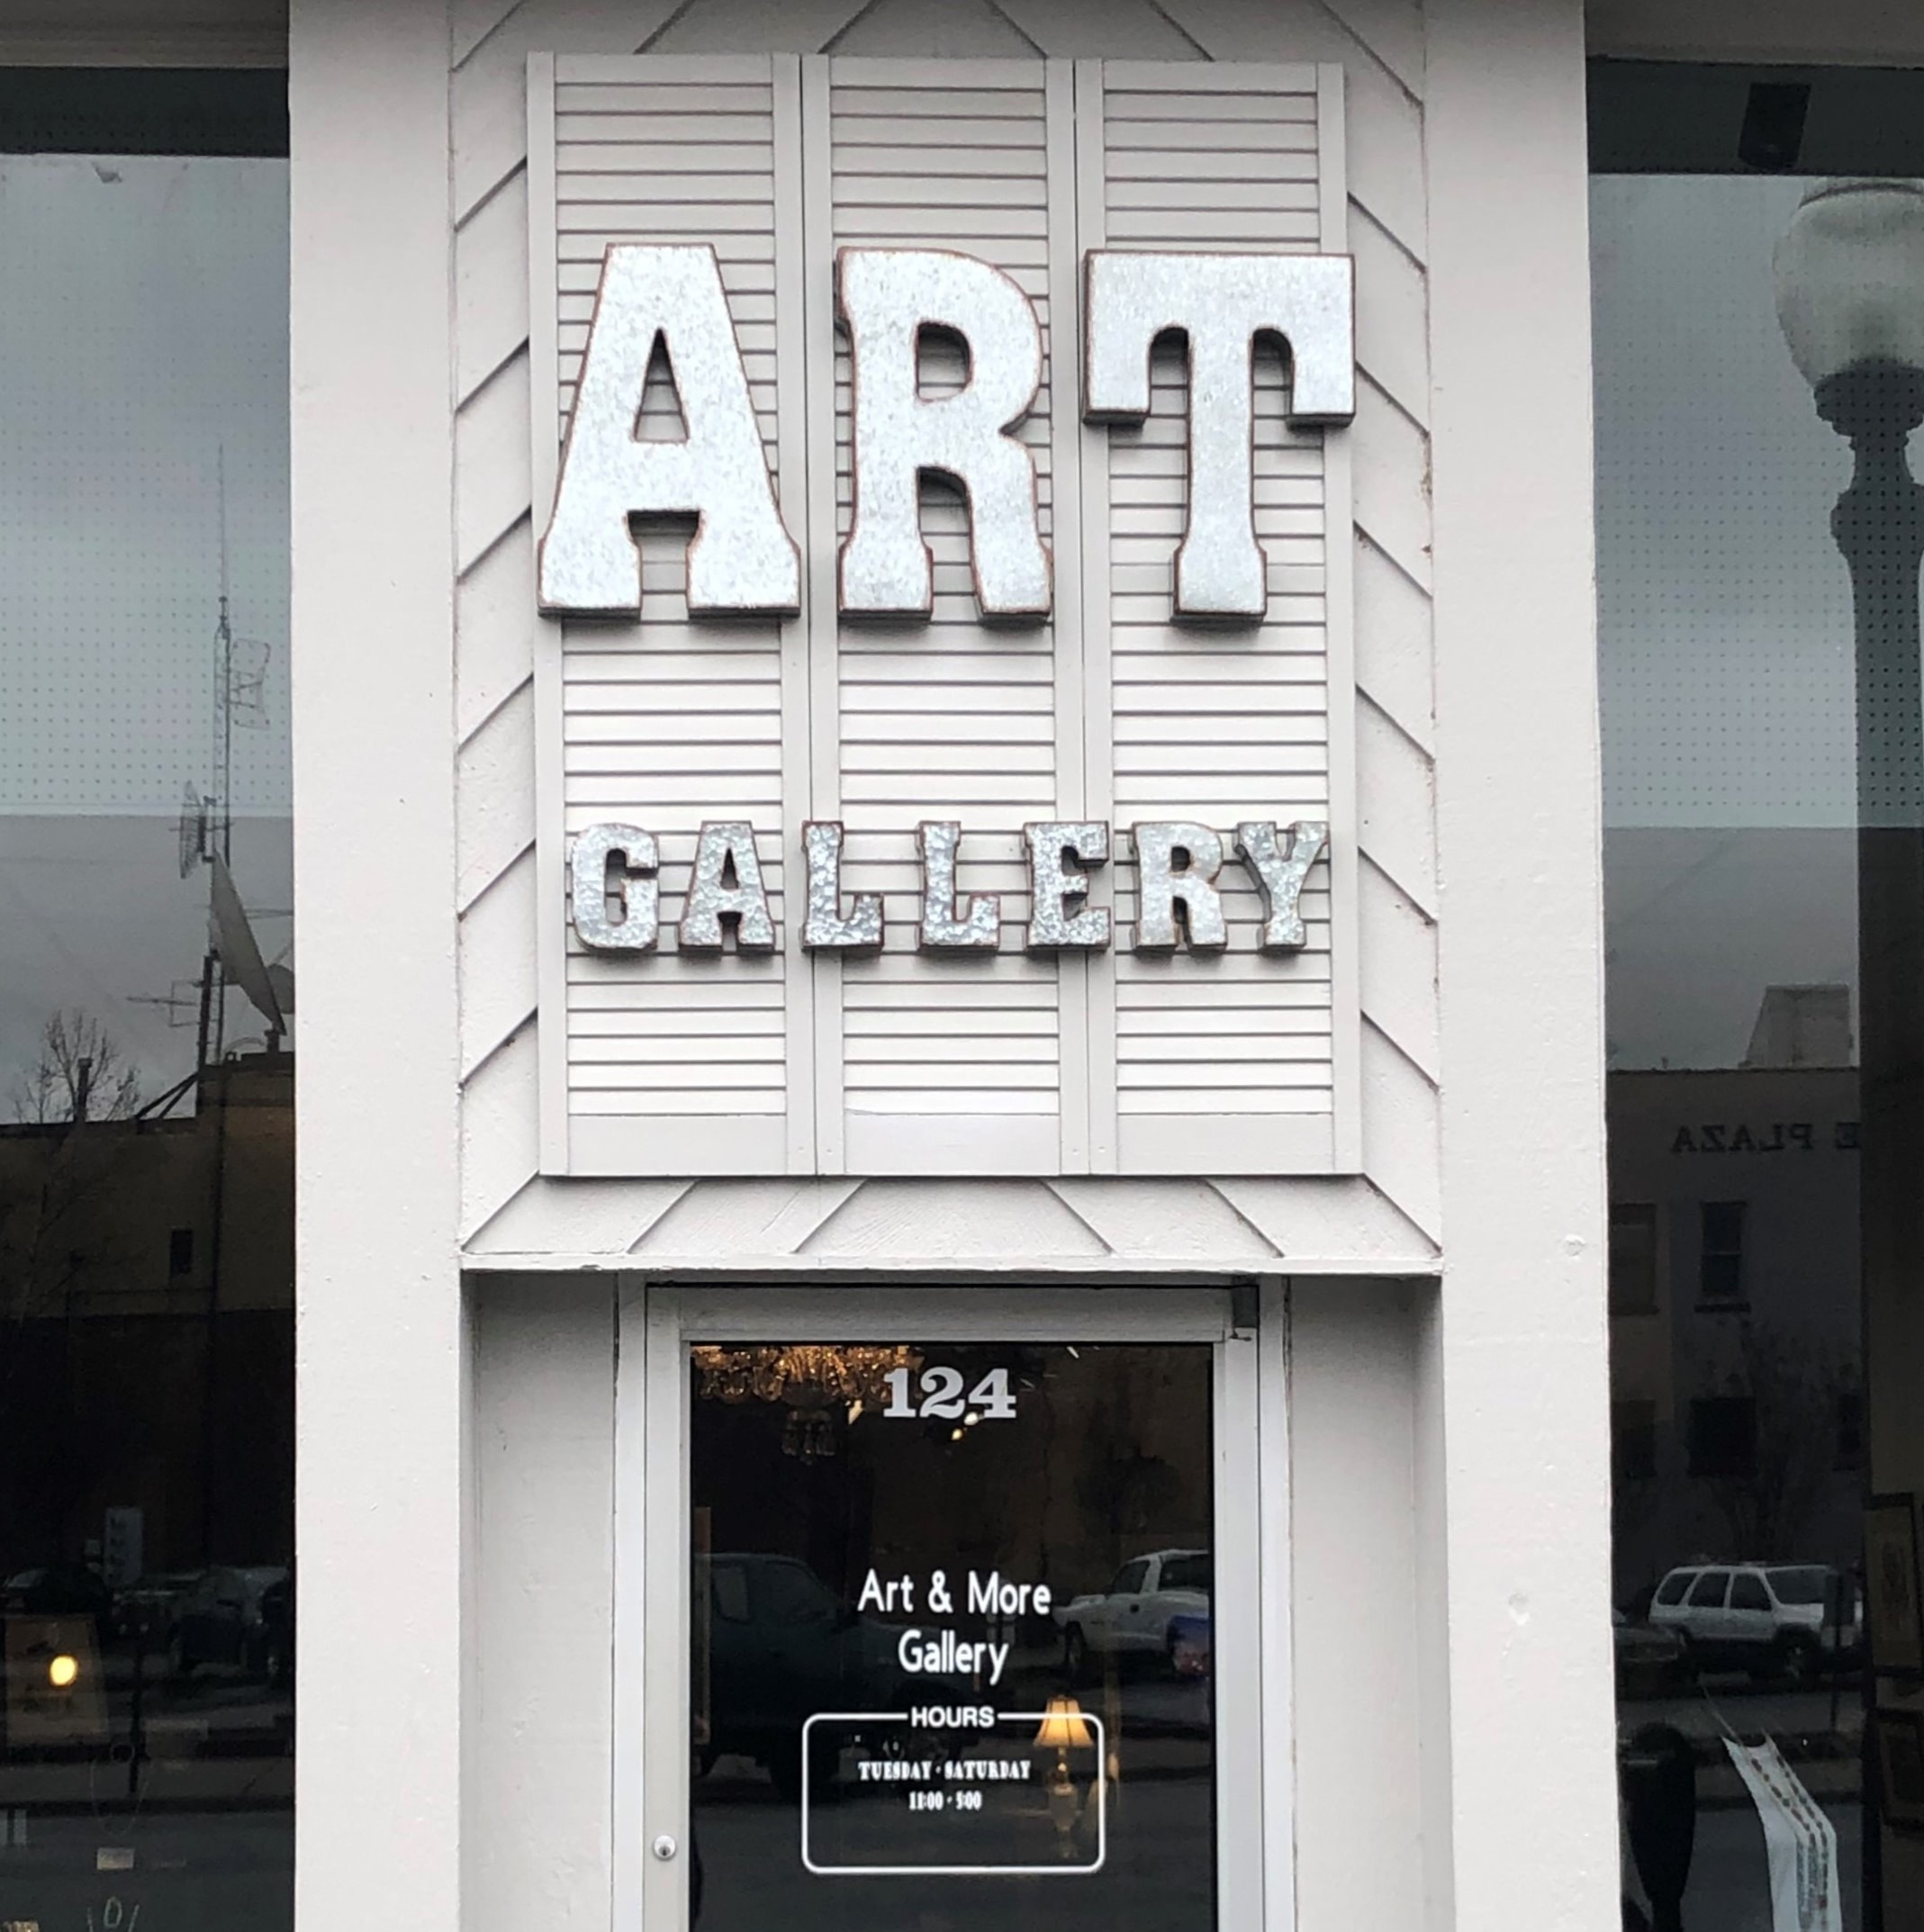 Art & More Gallery